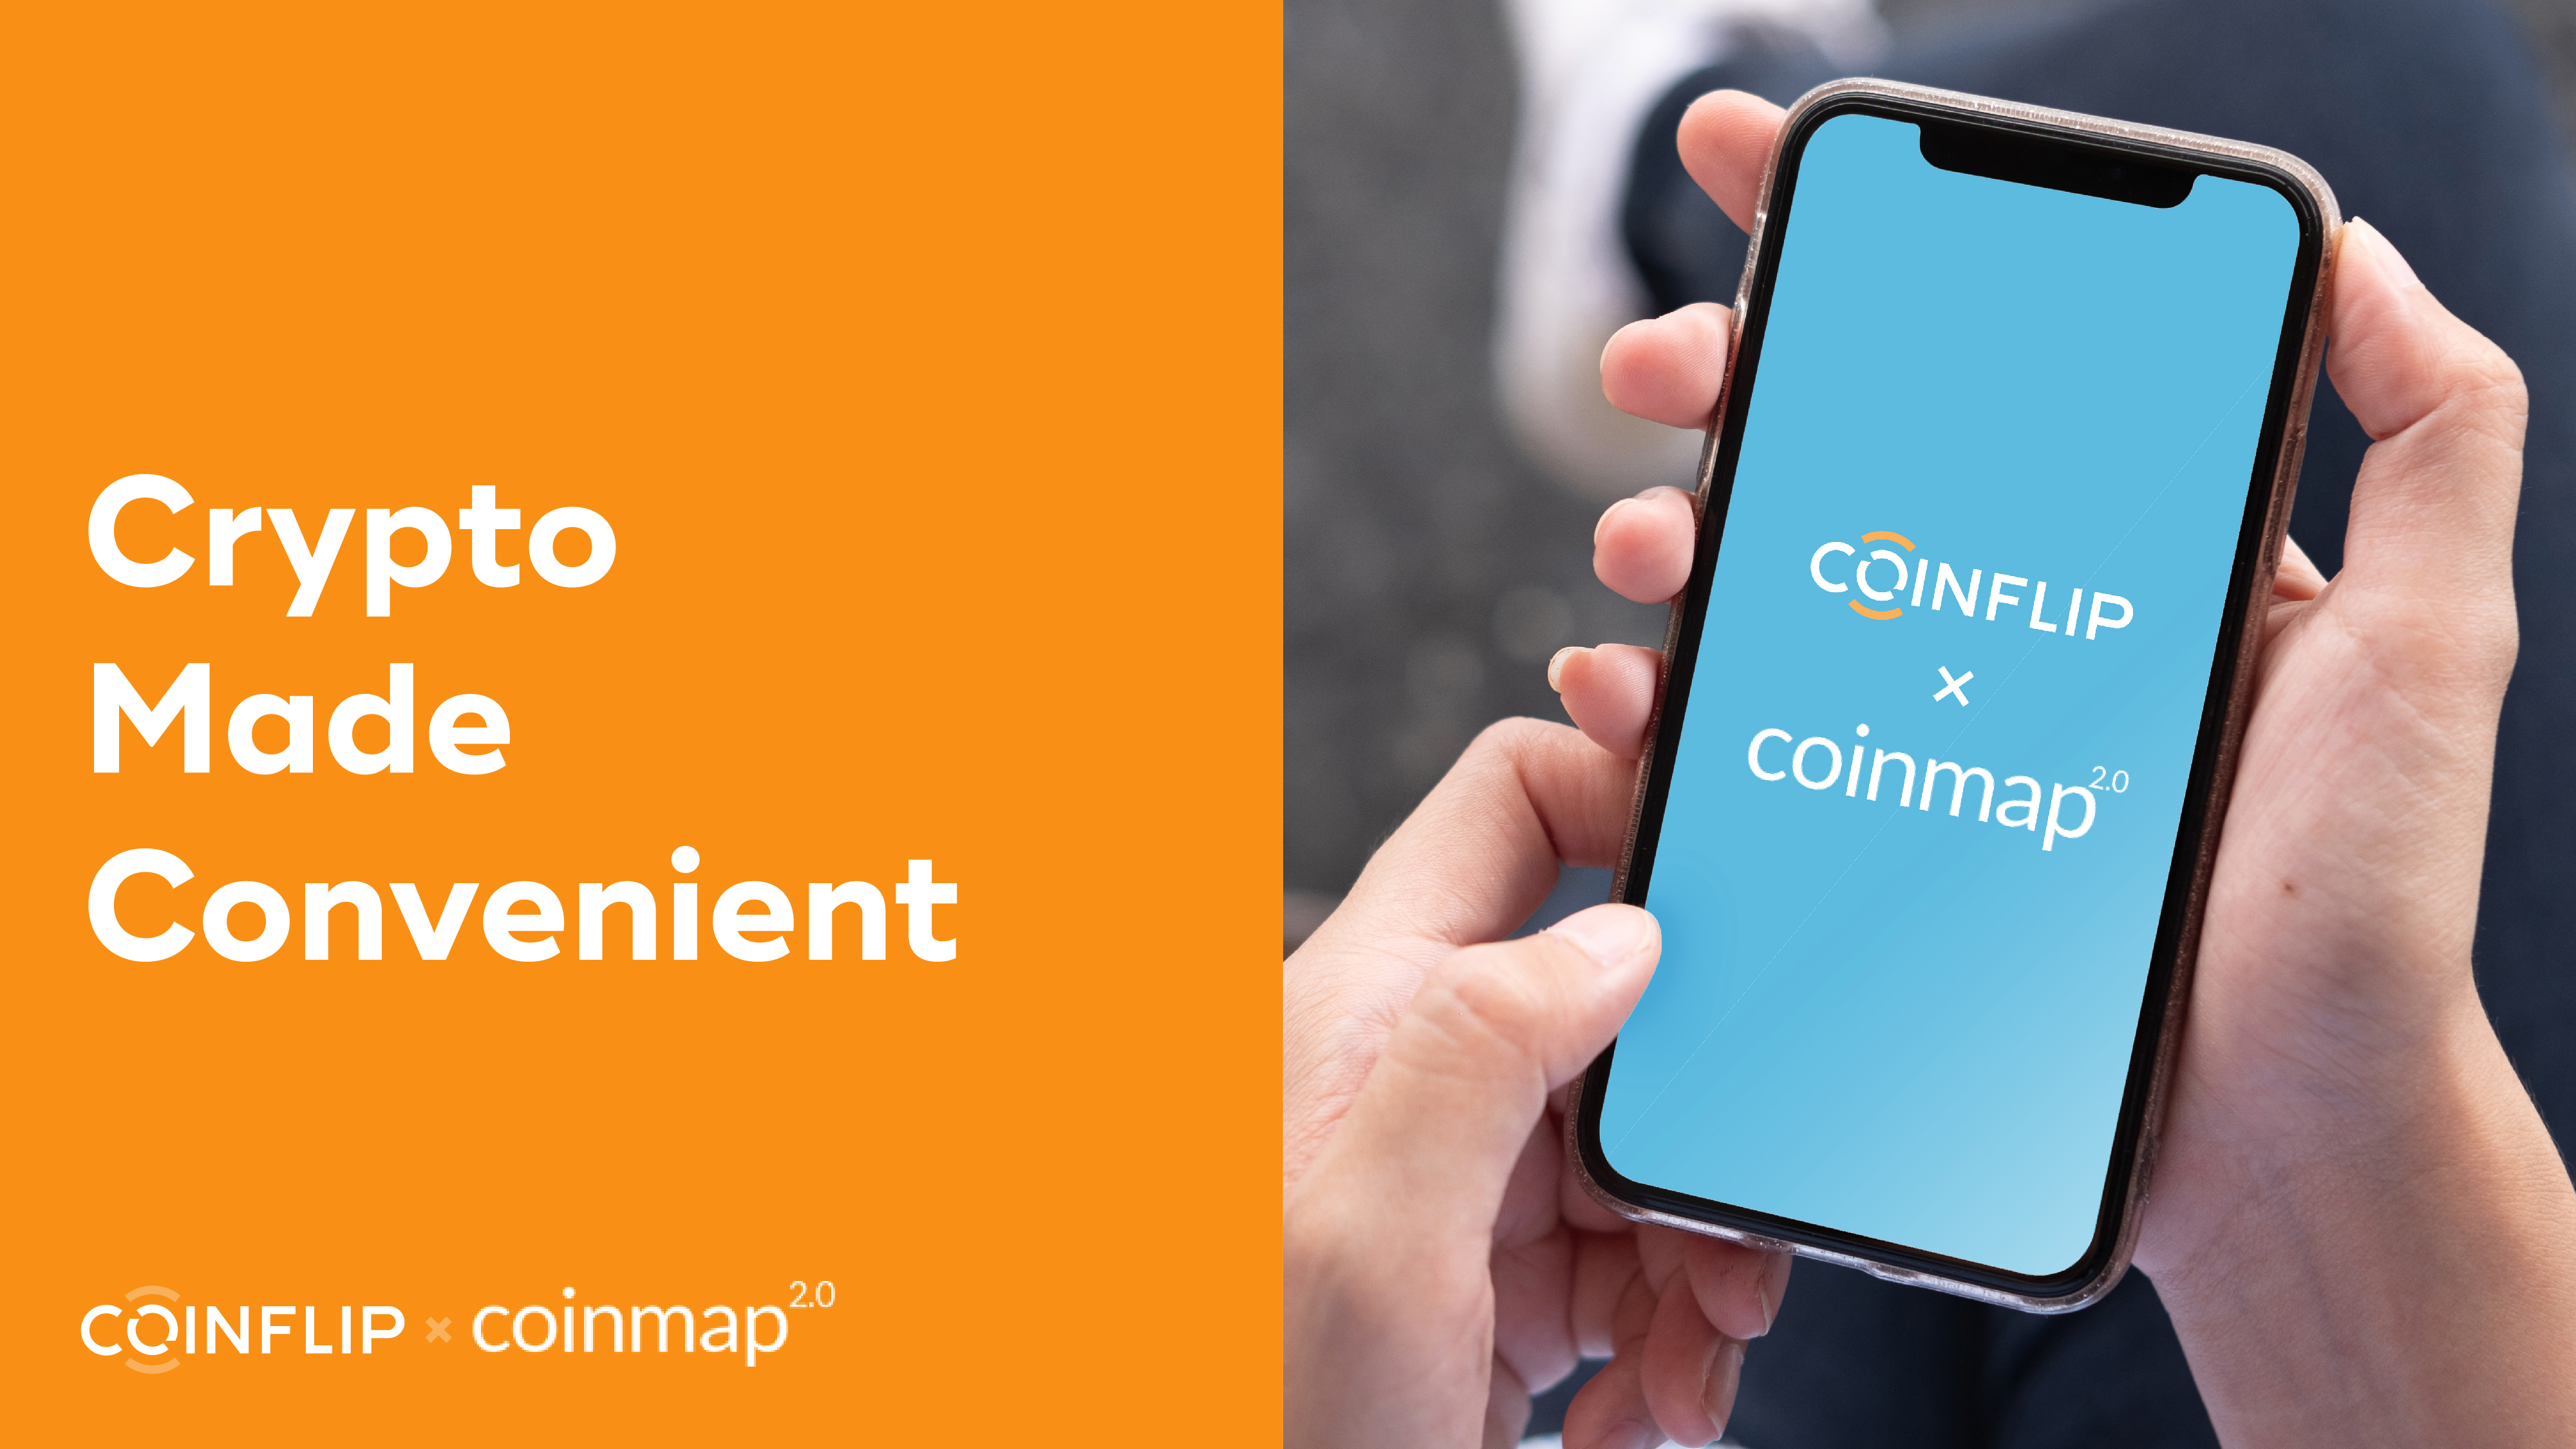 Cover Image for Crypto Made Convenient with CoinFlip and Coinmap